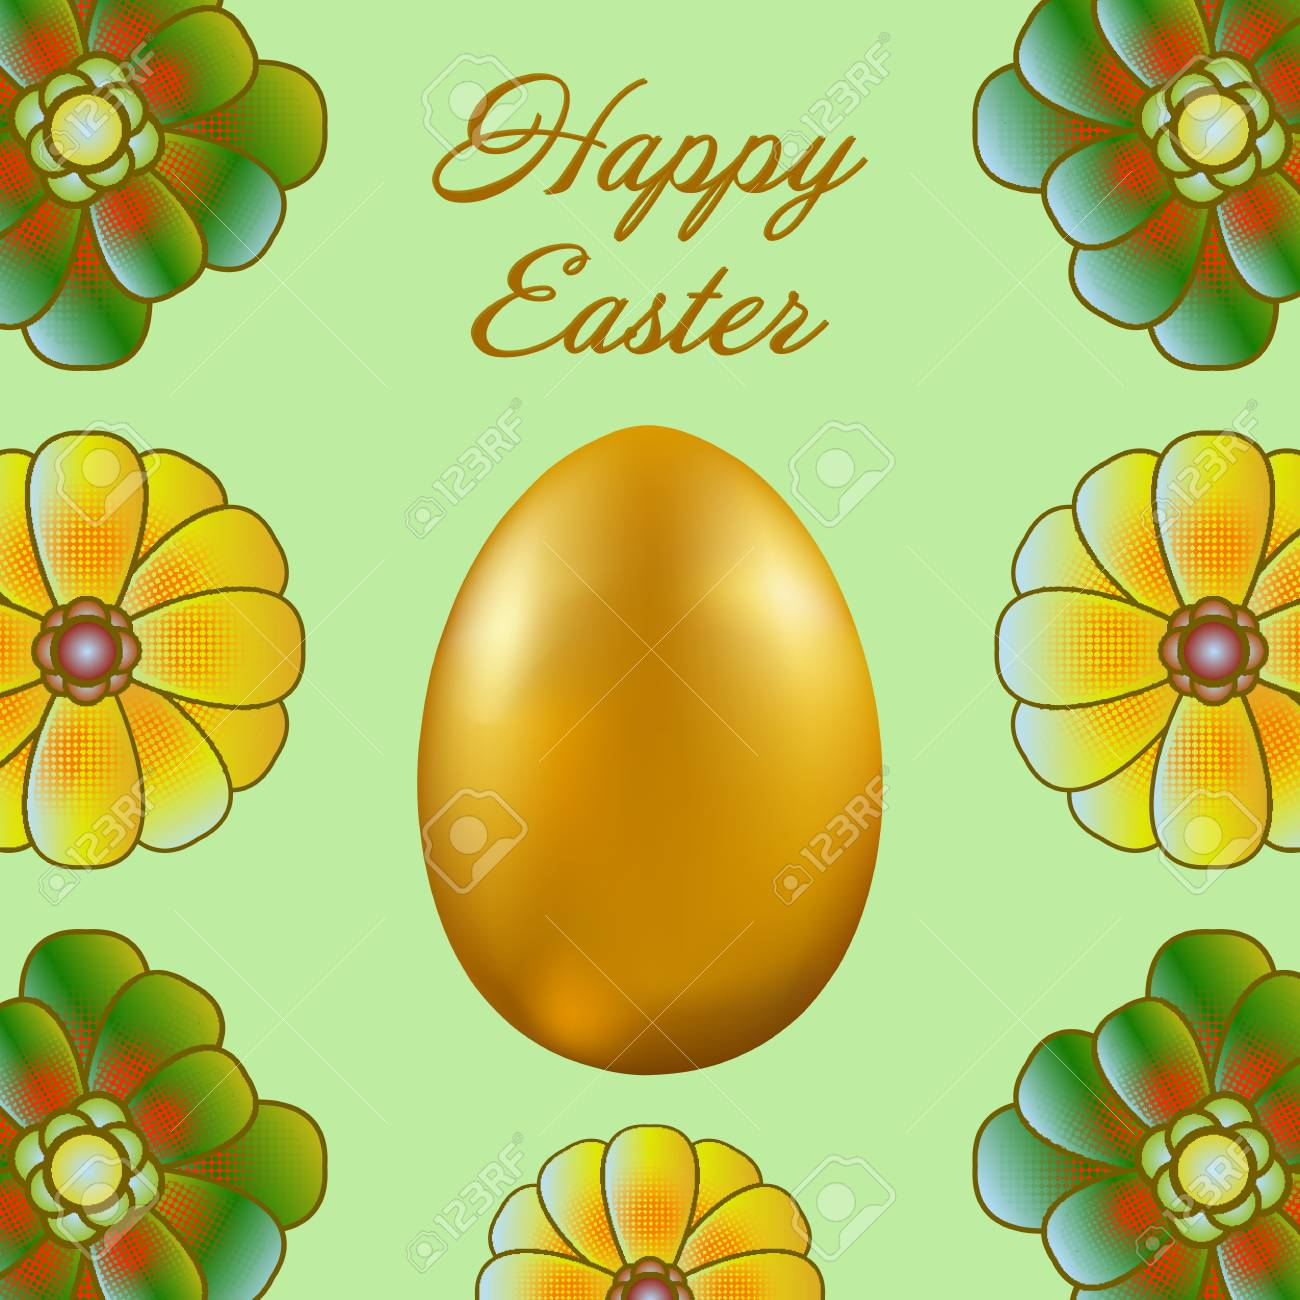 Happy Easter Isolated On A Light Green Background Golden Egg And